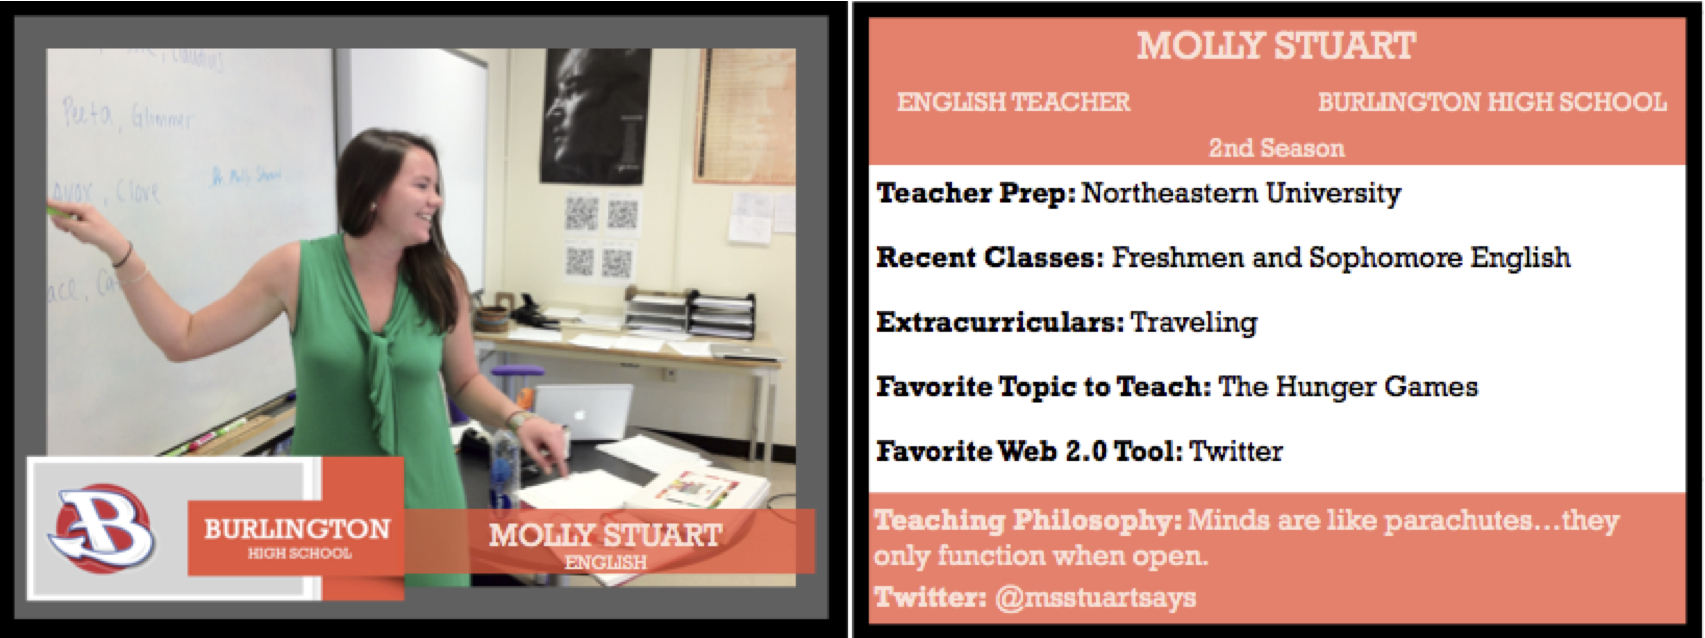 Teacher Trading Cards: Collect Them All! | Michael K. Milton ...